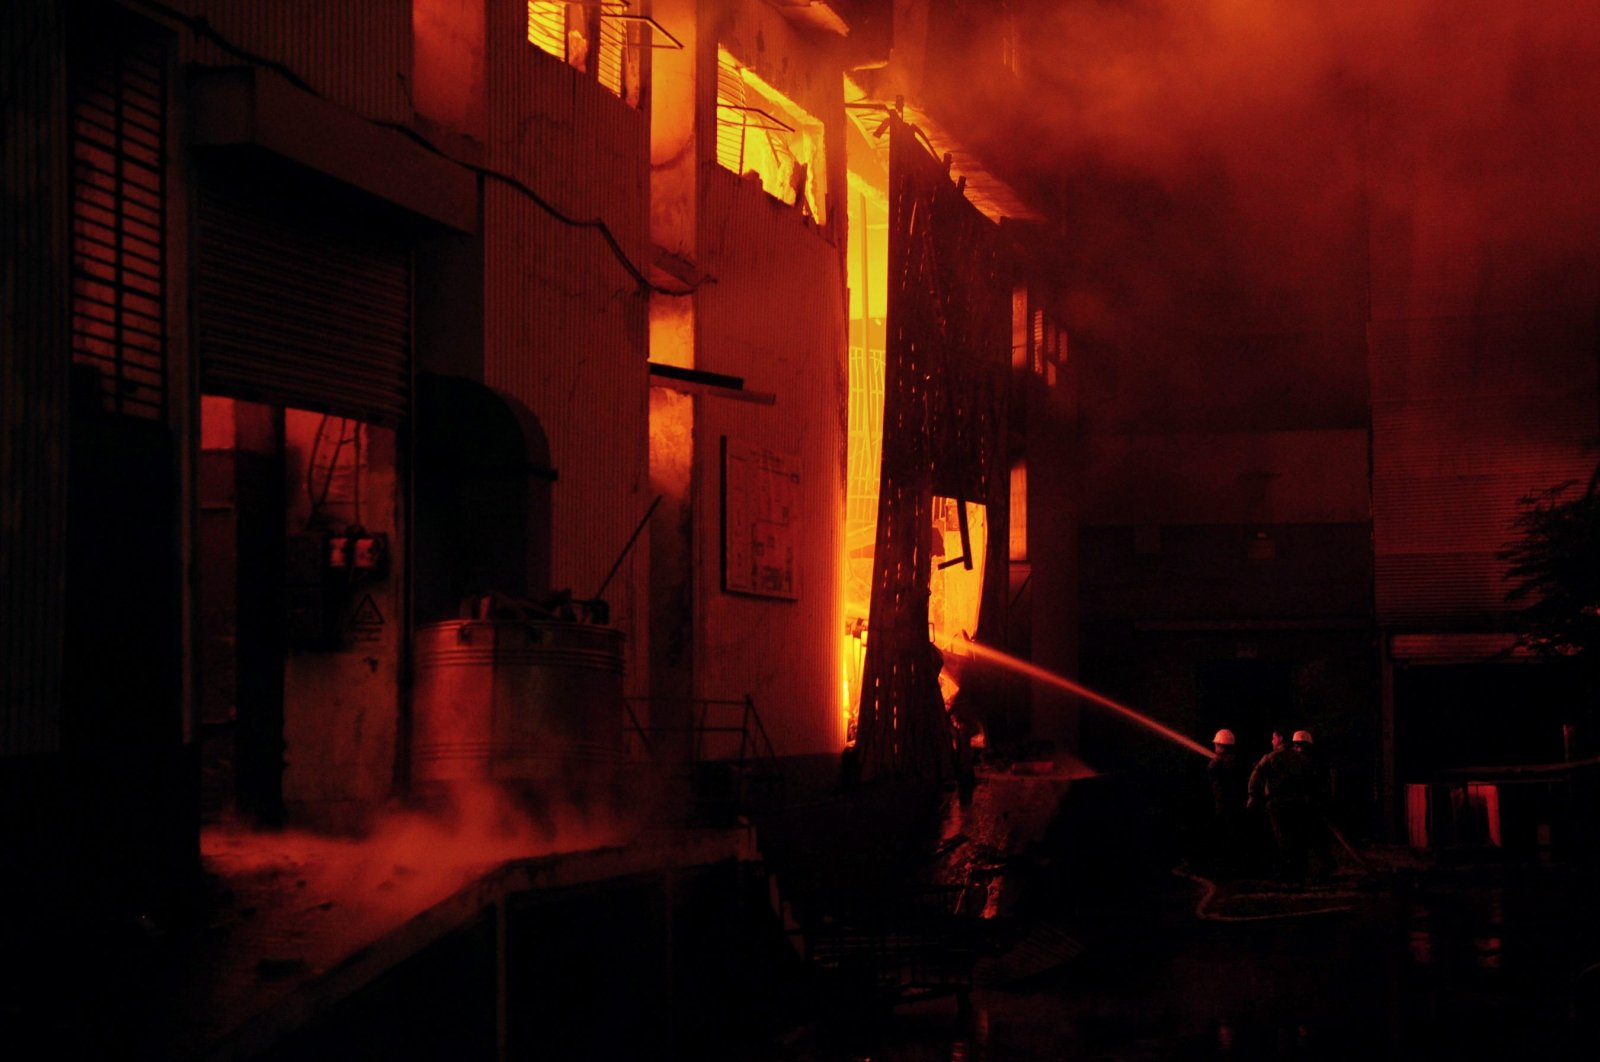 Pakistani firefighters extinguish a fire that erupted in a garment factory in Karachi, Pakistan, on Sept. 11, 2012. (AFP Photo)